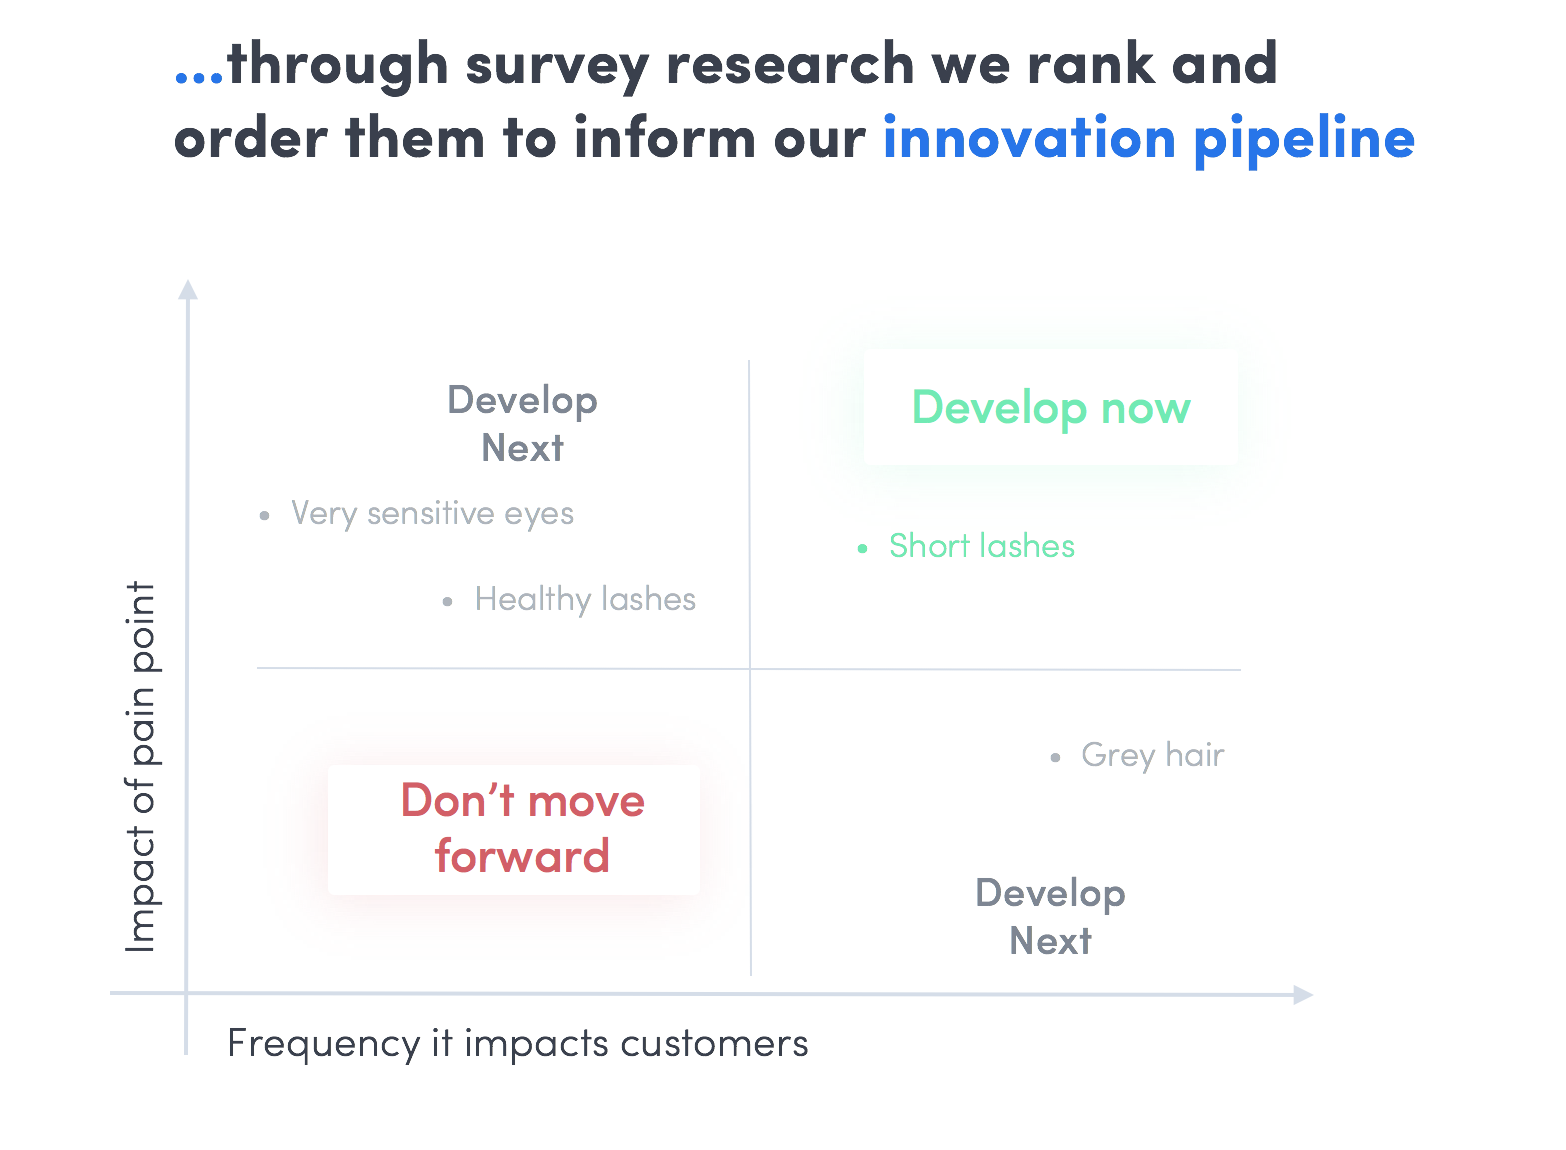 prioritize innovation ideas based on impact and scale